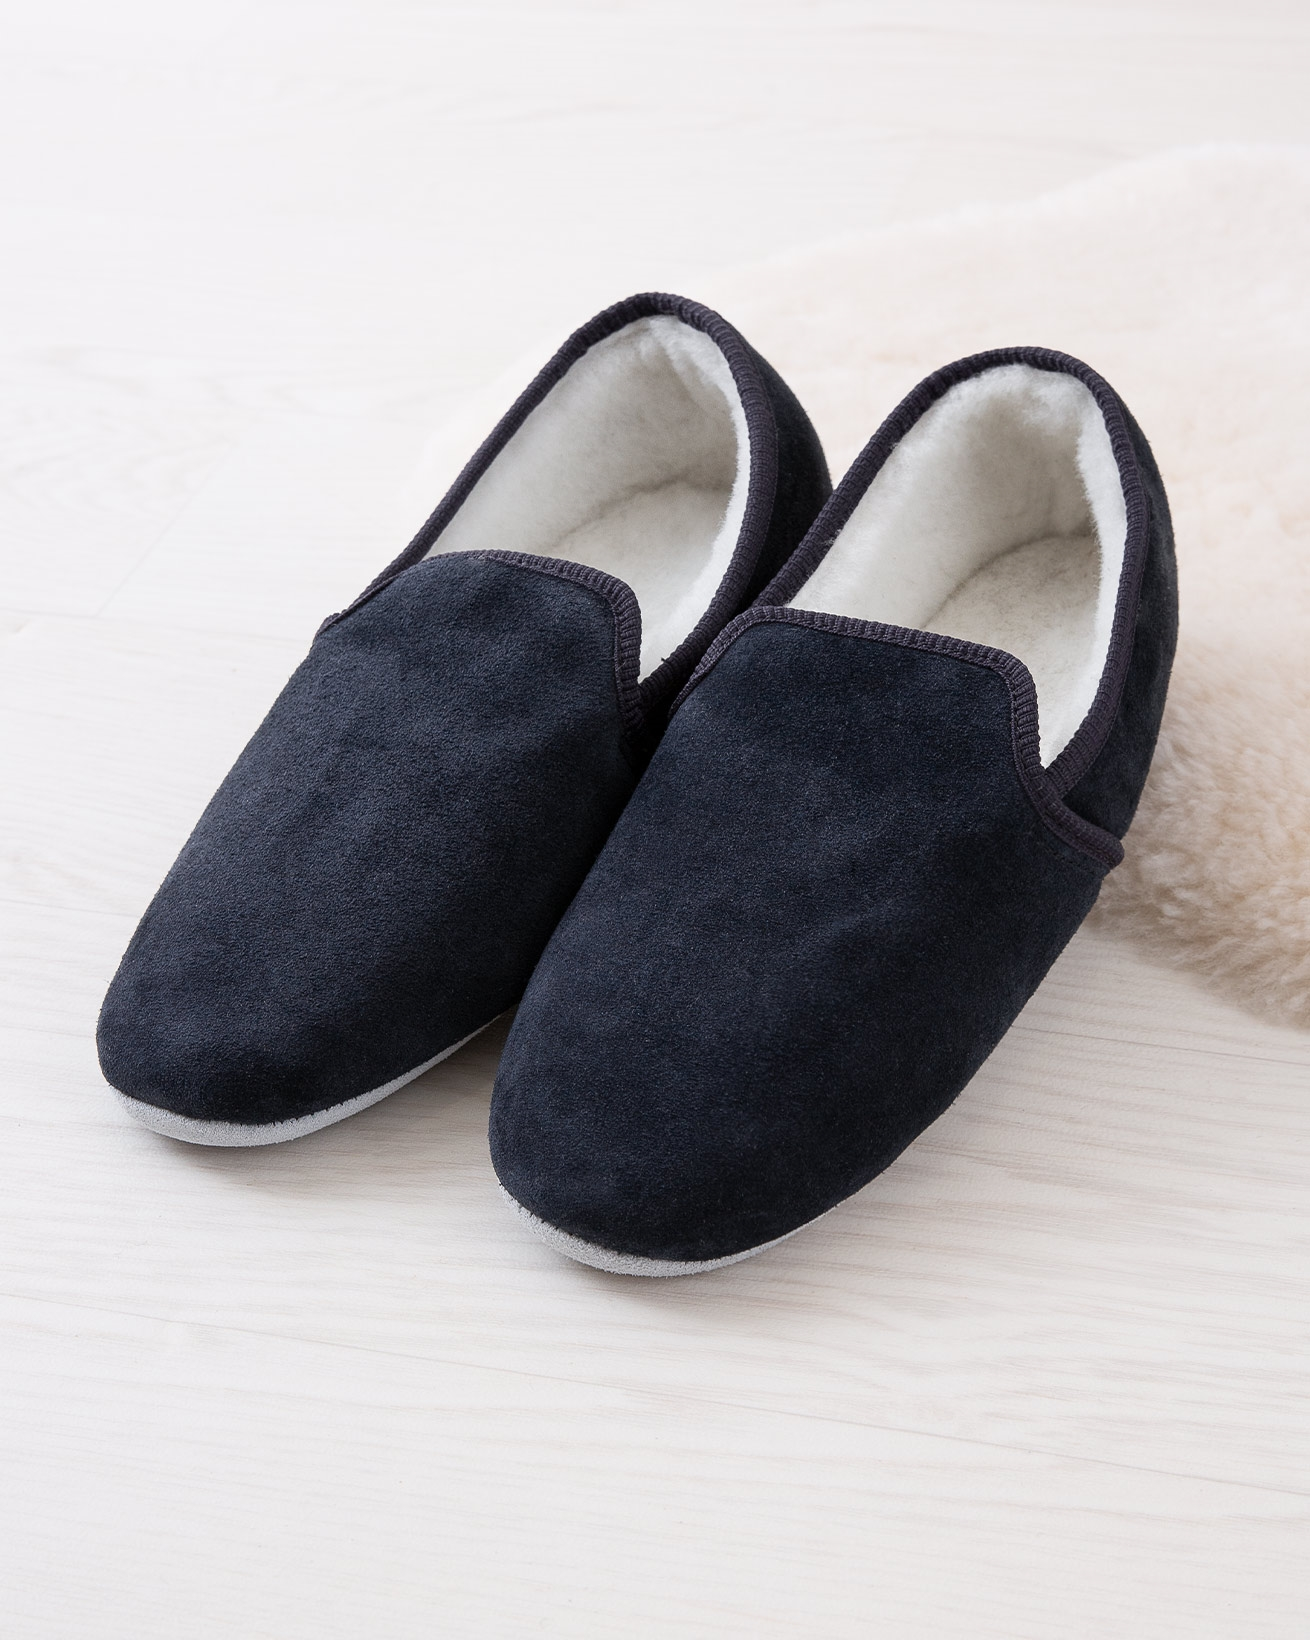 2130_windsor-slippers_navy_lifestyle_lfs.jpg